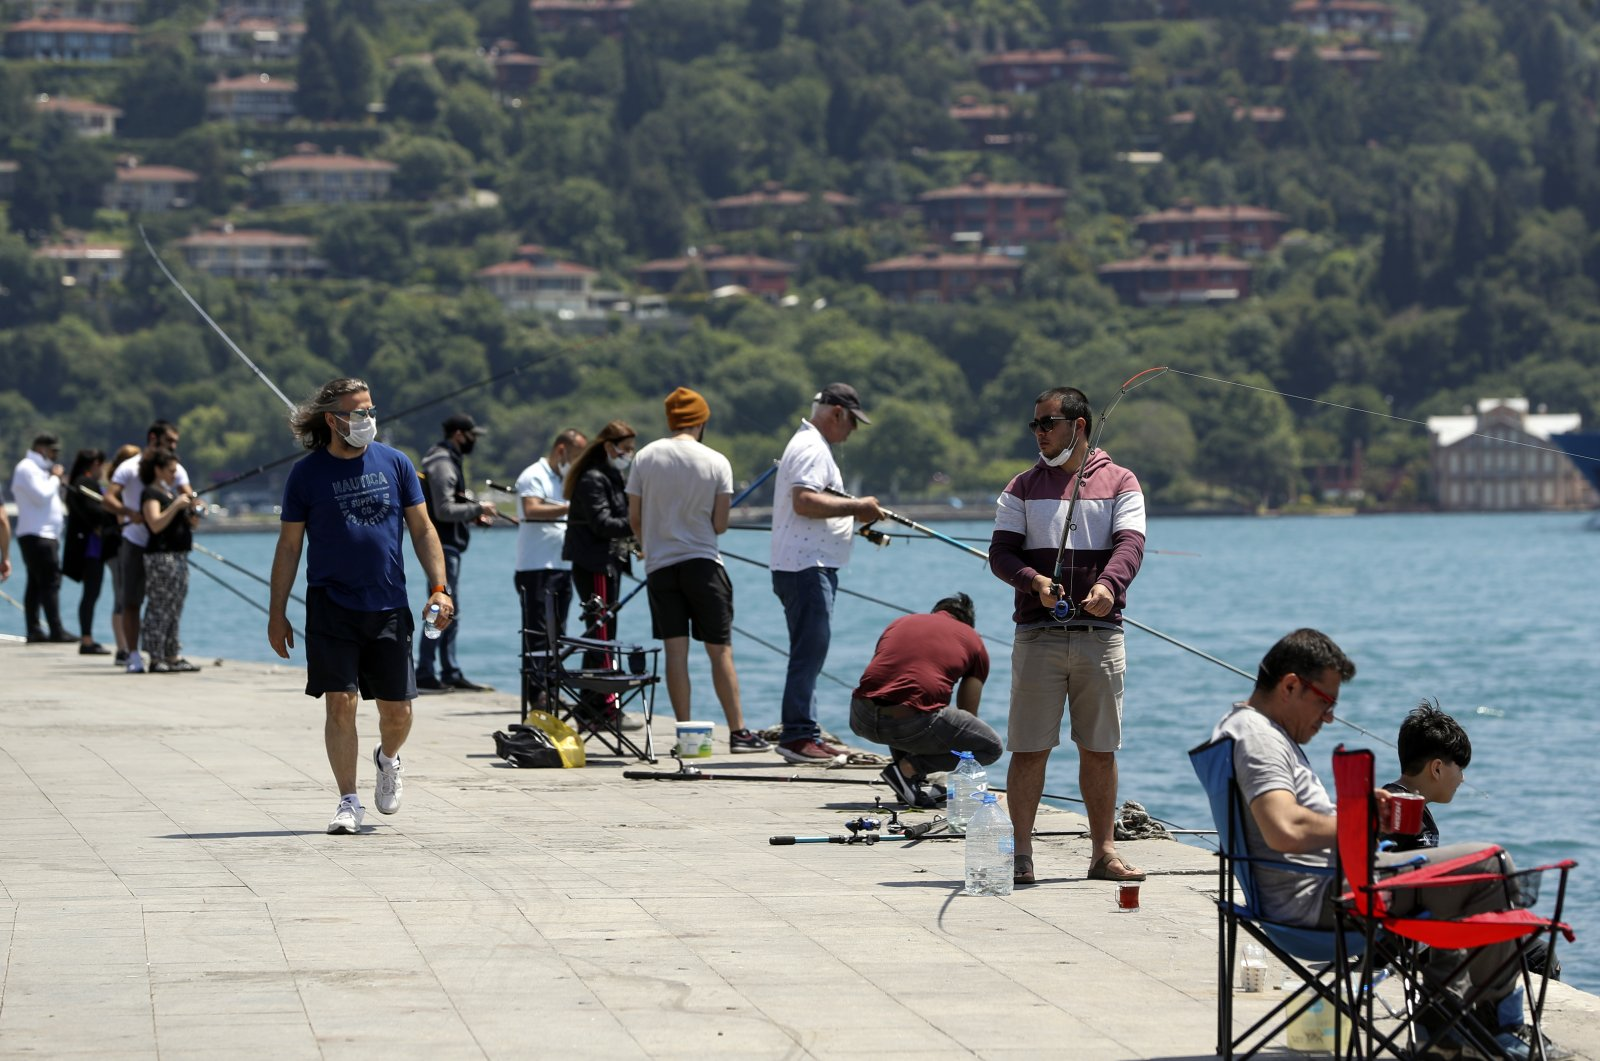 Some went fishing, others for a walk and some preferred simply watching the scenic Bosporus on the first weekend without a curfew, Istanbul, Turkey, June 7, 2020. (AA Photo)